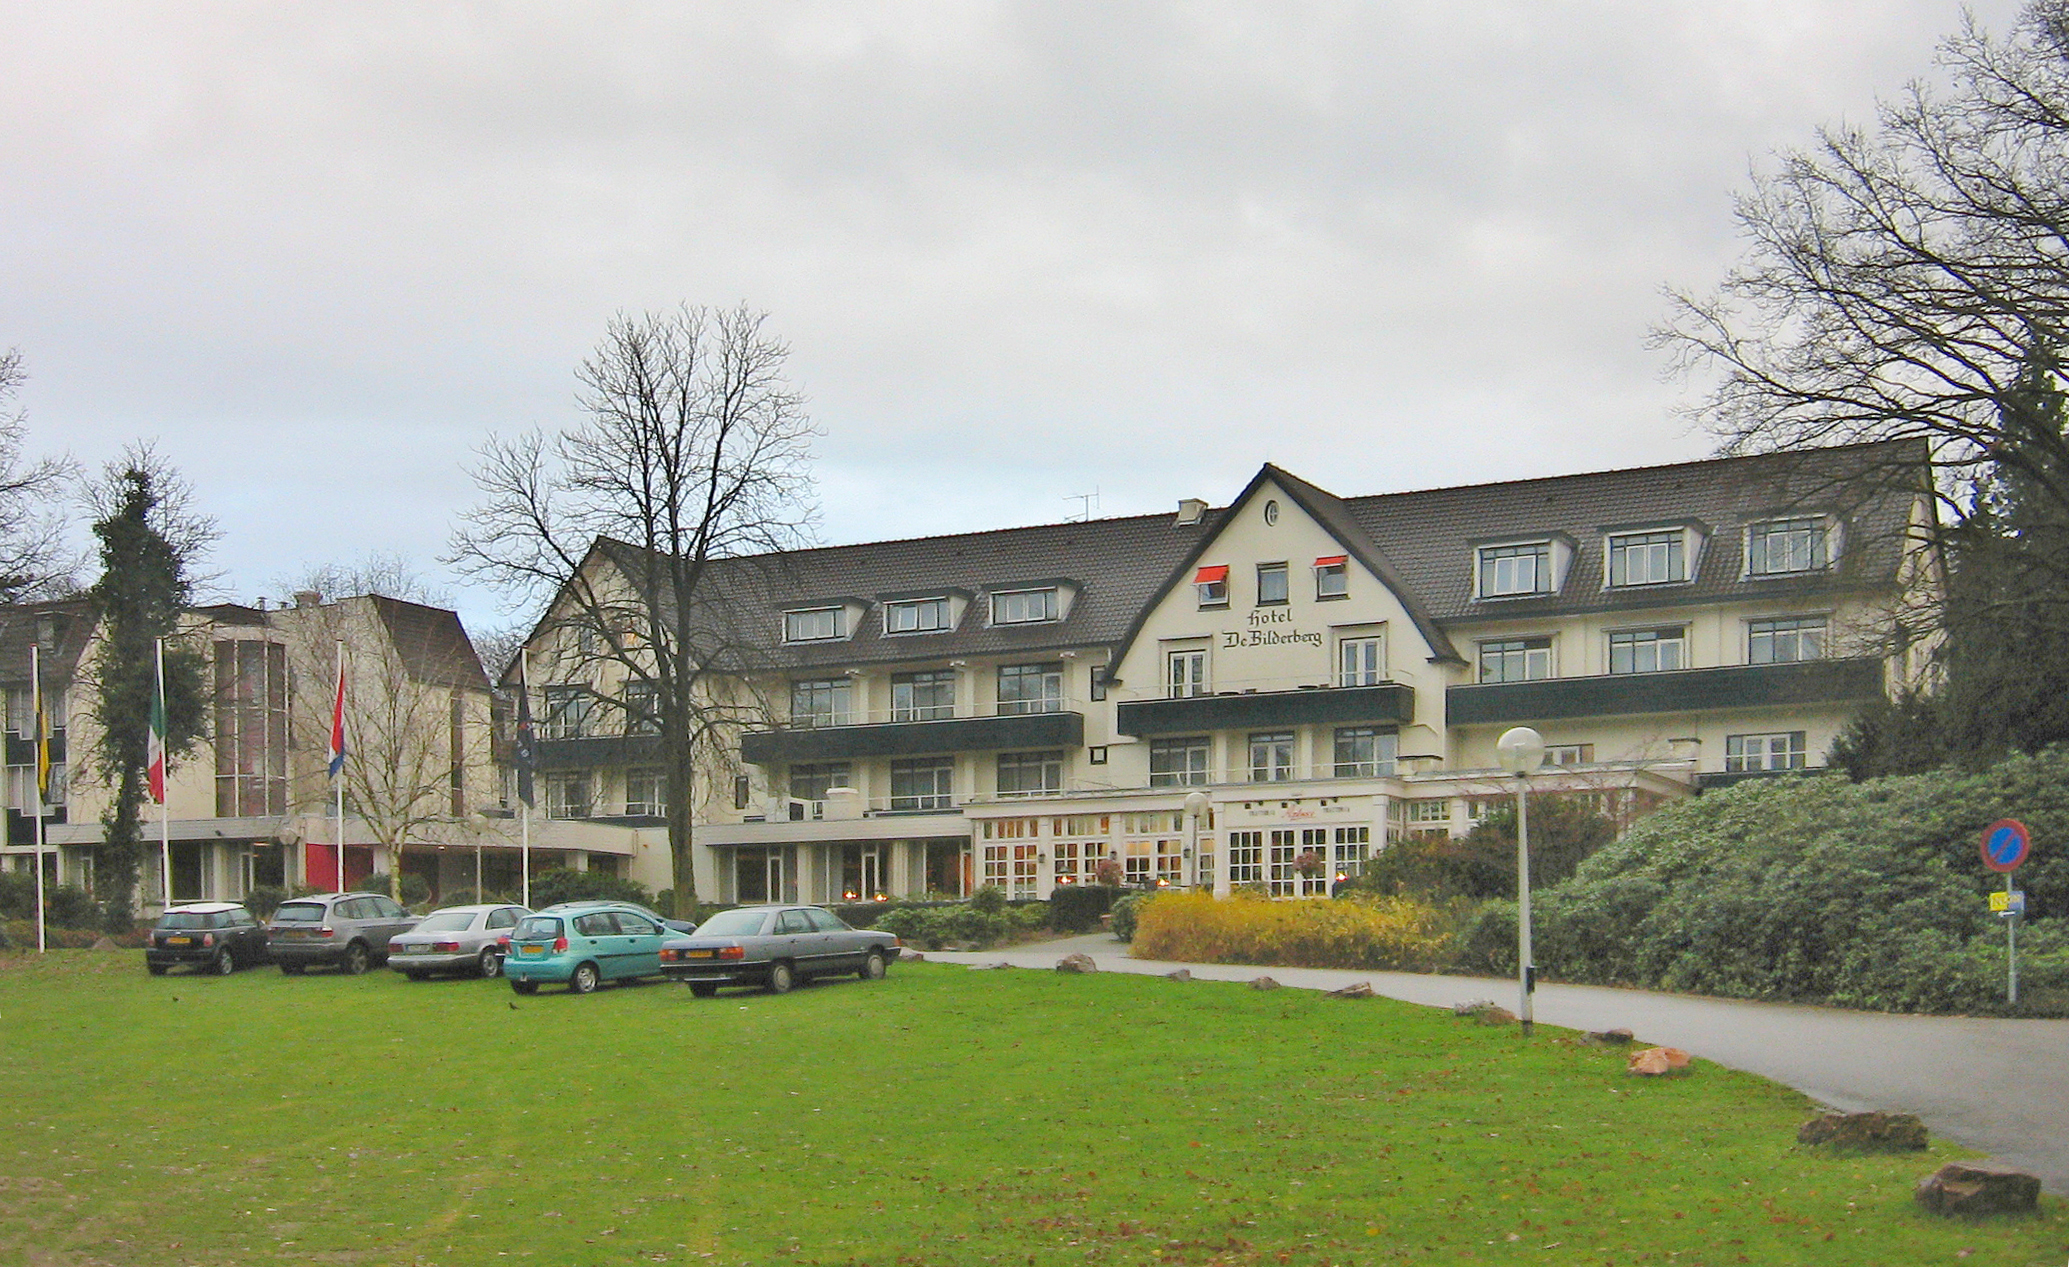 http://upload.wikimedia.org/wikipedia/commons/b/bc/Bilderberg_-_Oosterbeek.jpg